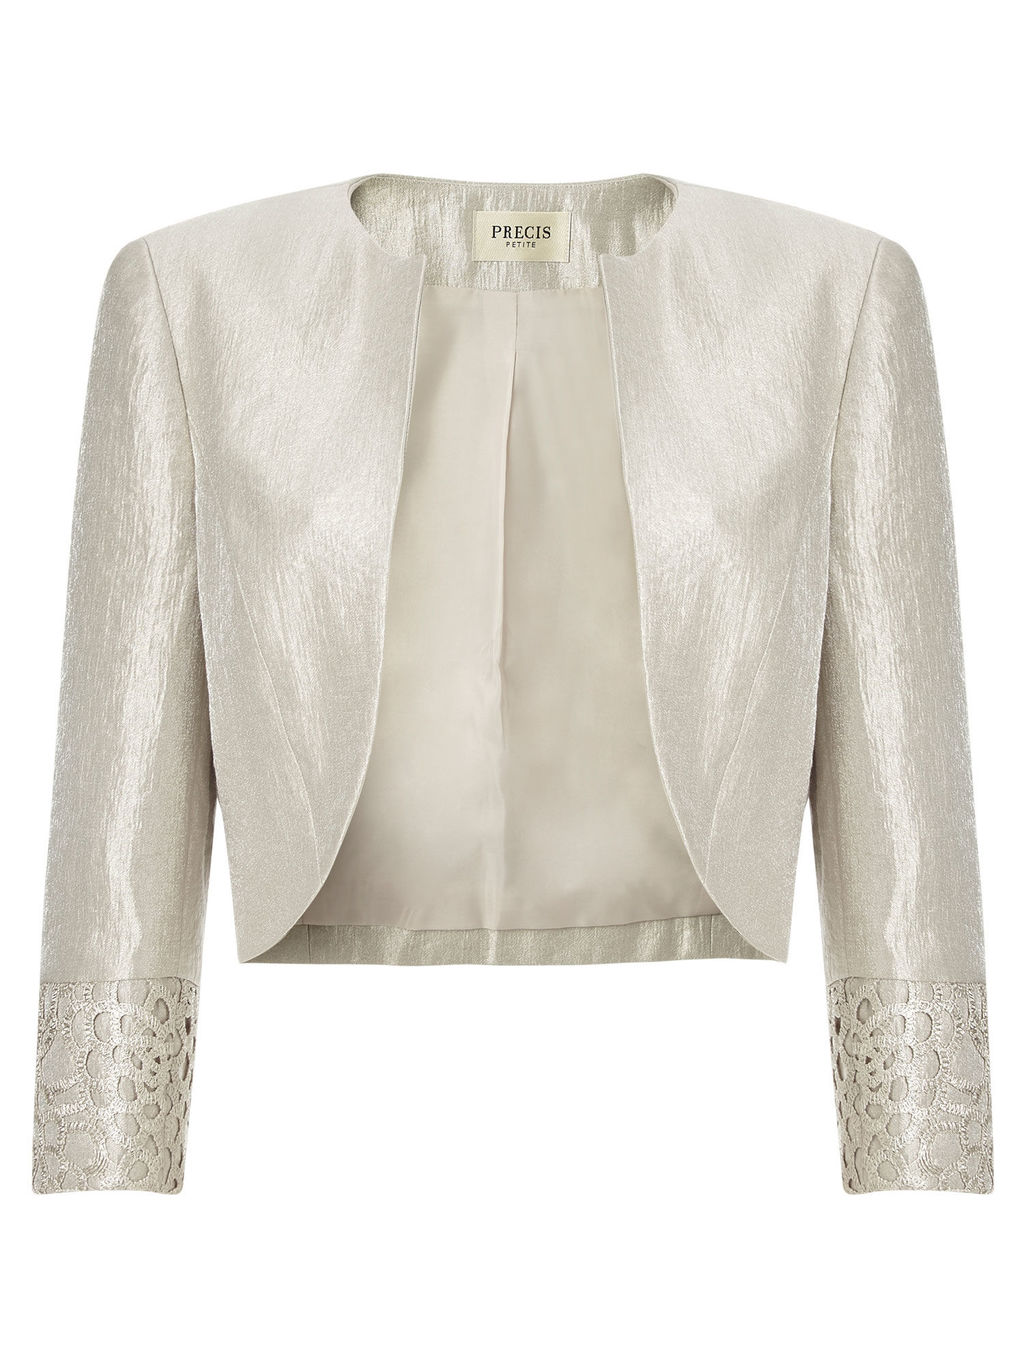 Lace Shimmer Bolero, Oyster - pattern: plain; style: bolero/shrug; collar: round collar/collarless; fit: slim fit; predominant colour: ivory/cream; length: standard; fibres: polyester/polyamide - mix; occasions: occasion; sleeve length: 3/4 length; sleeve style: standard; collar break: low/open; pattern type: fabric; texture group: brocade/jacquard; season: a/w 2015; wardrobe: event